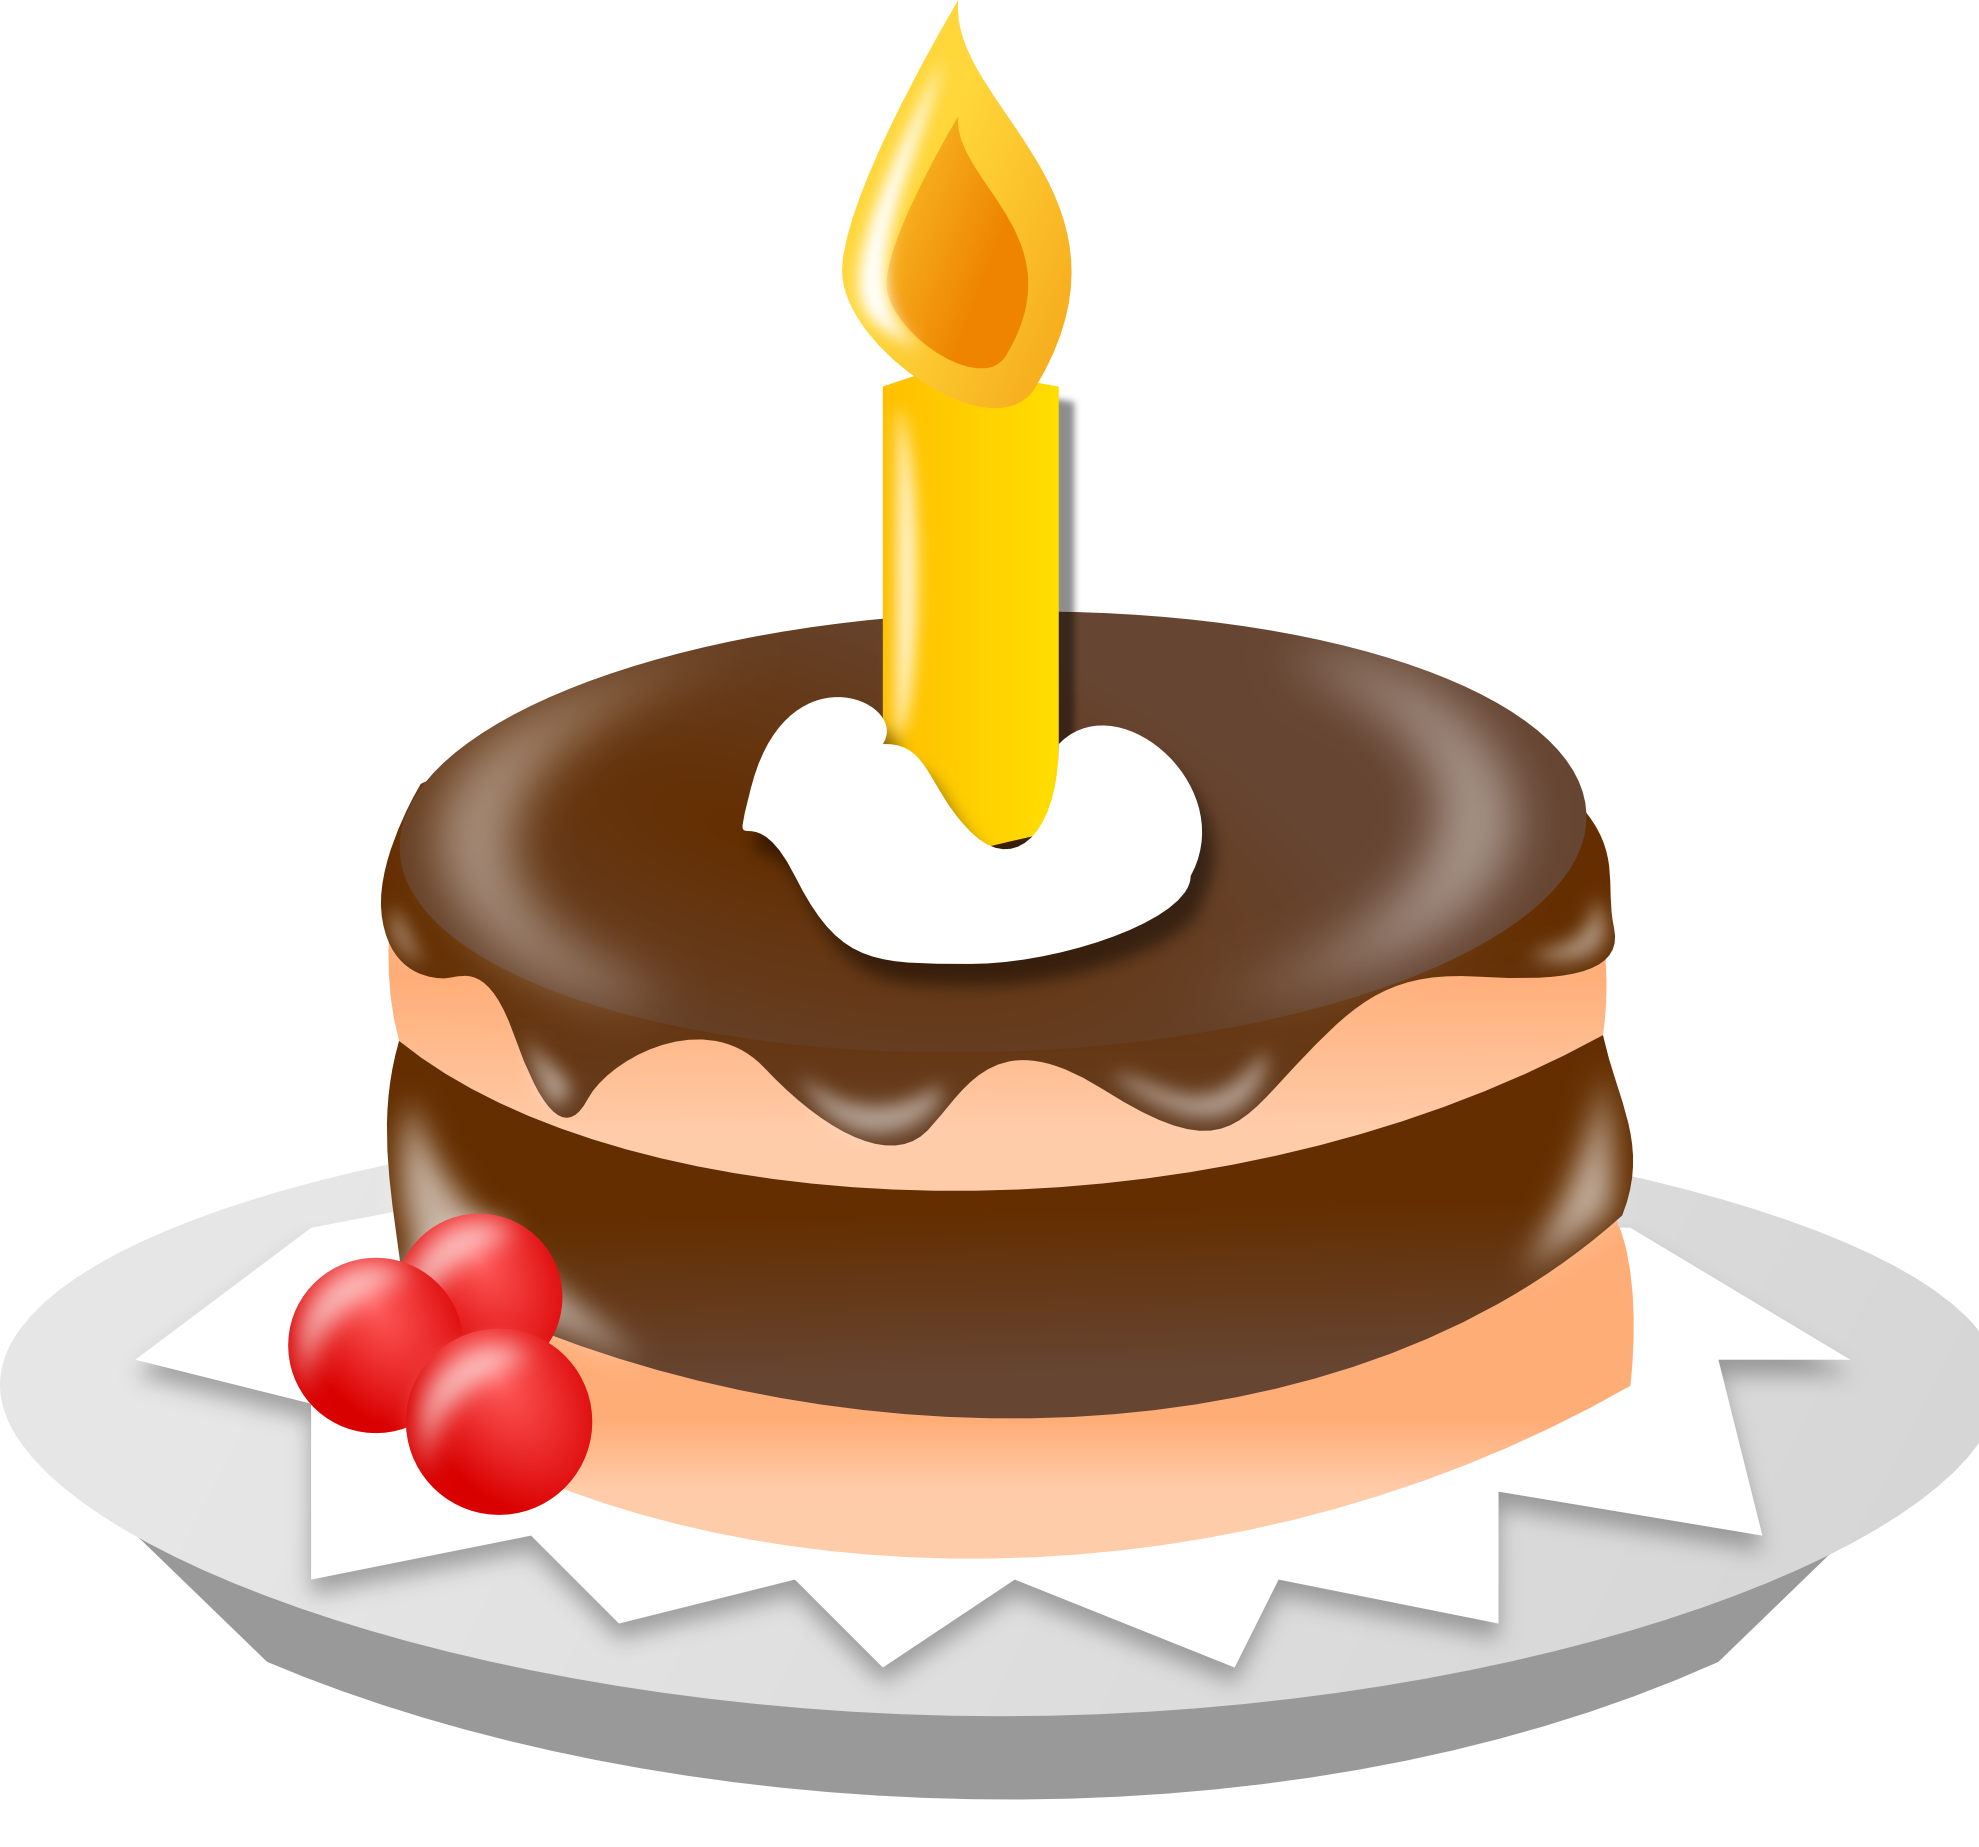 Cake vector png. Free download clip art